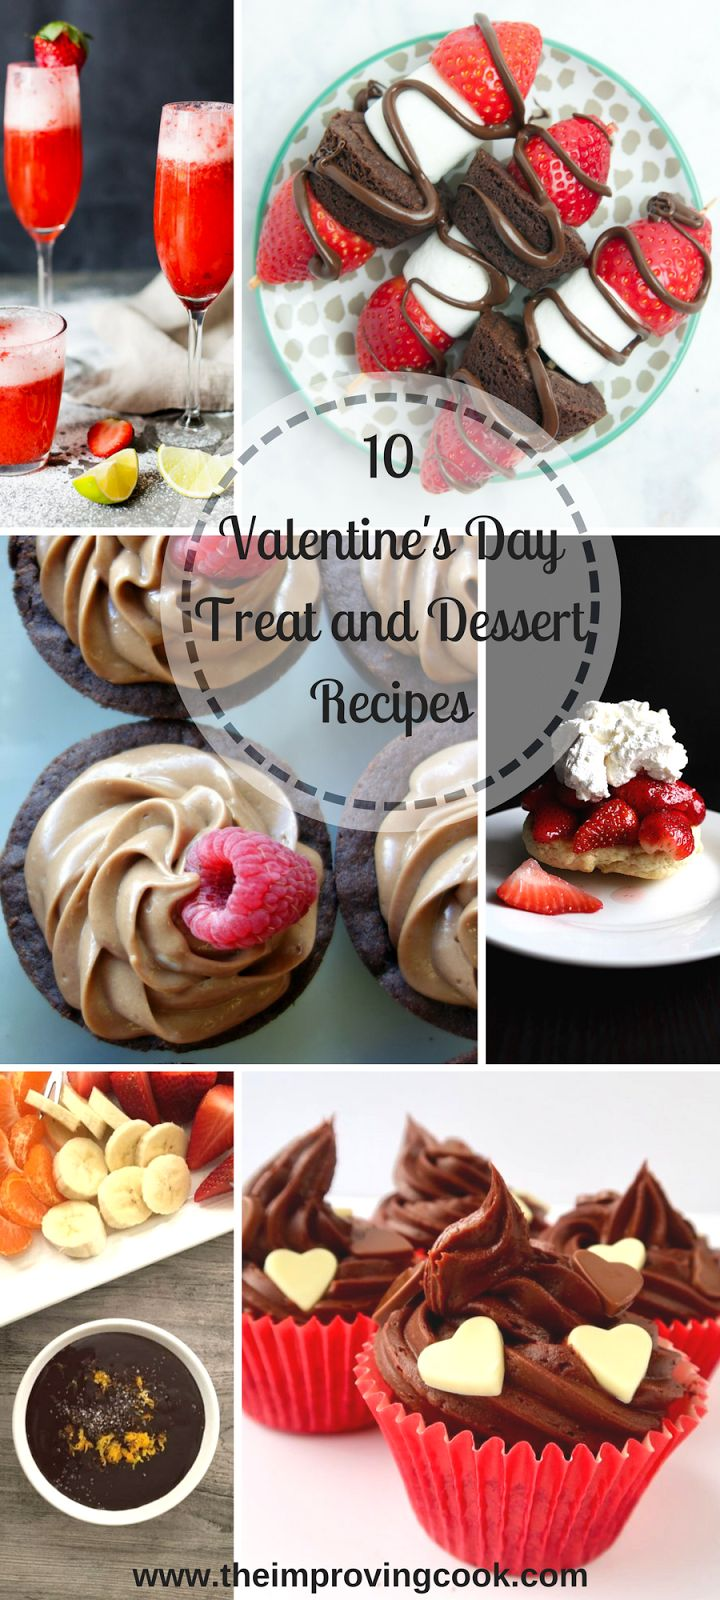 I have rounded up 10 delicious, Valentine's Day treat recipes from fellow food bloggers, that are perfect for finishing off your meal, sending into school or making with the kids. If you need a Valentine's Day treat or dessert idea, you're sure to find one is this list. Read on!